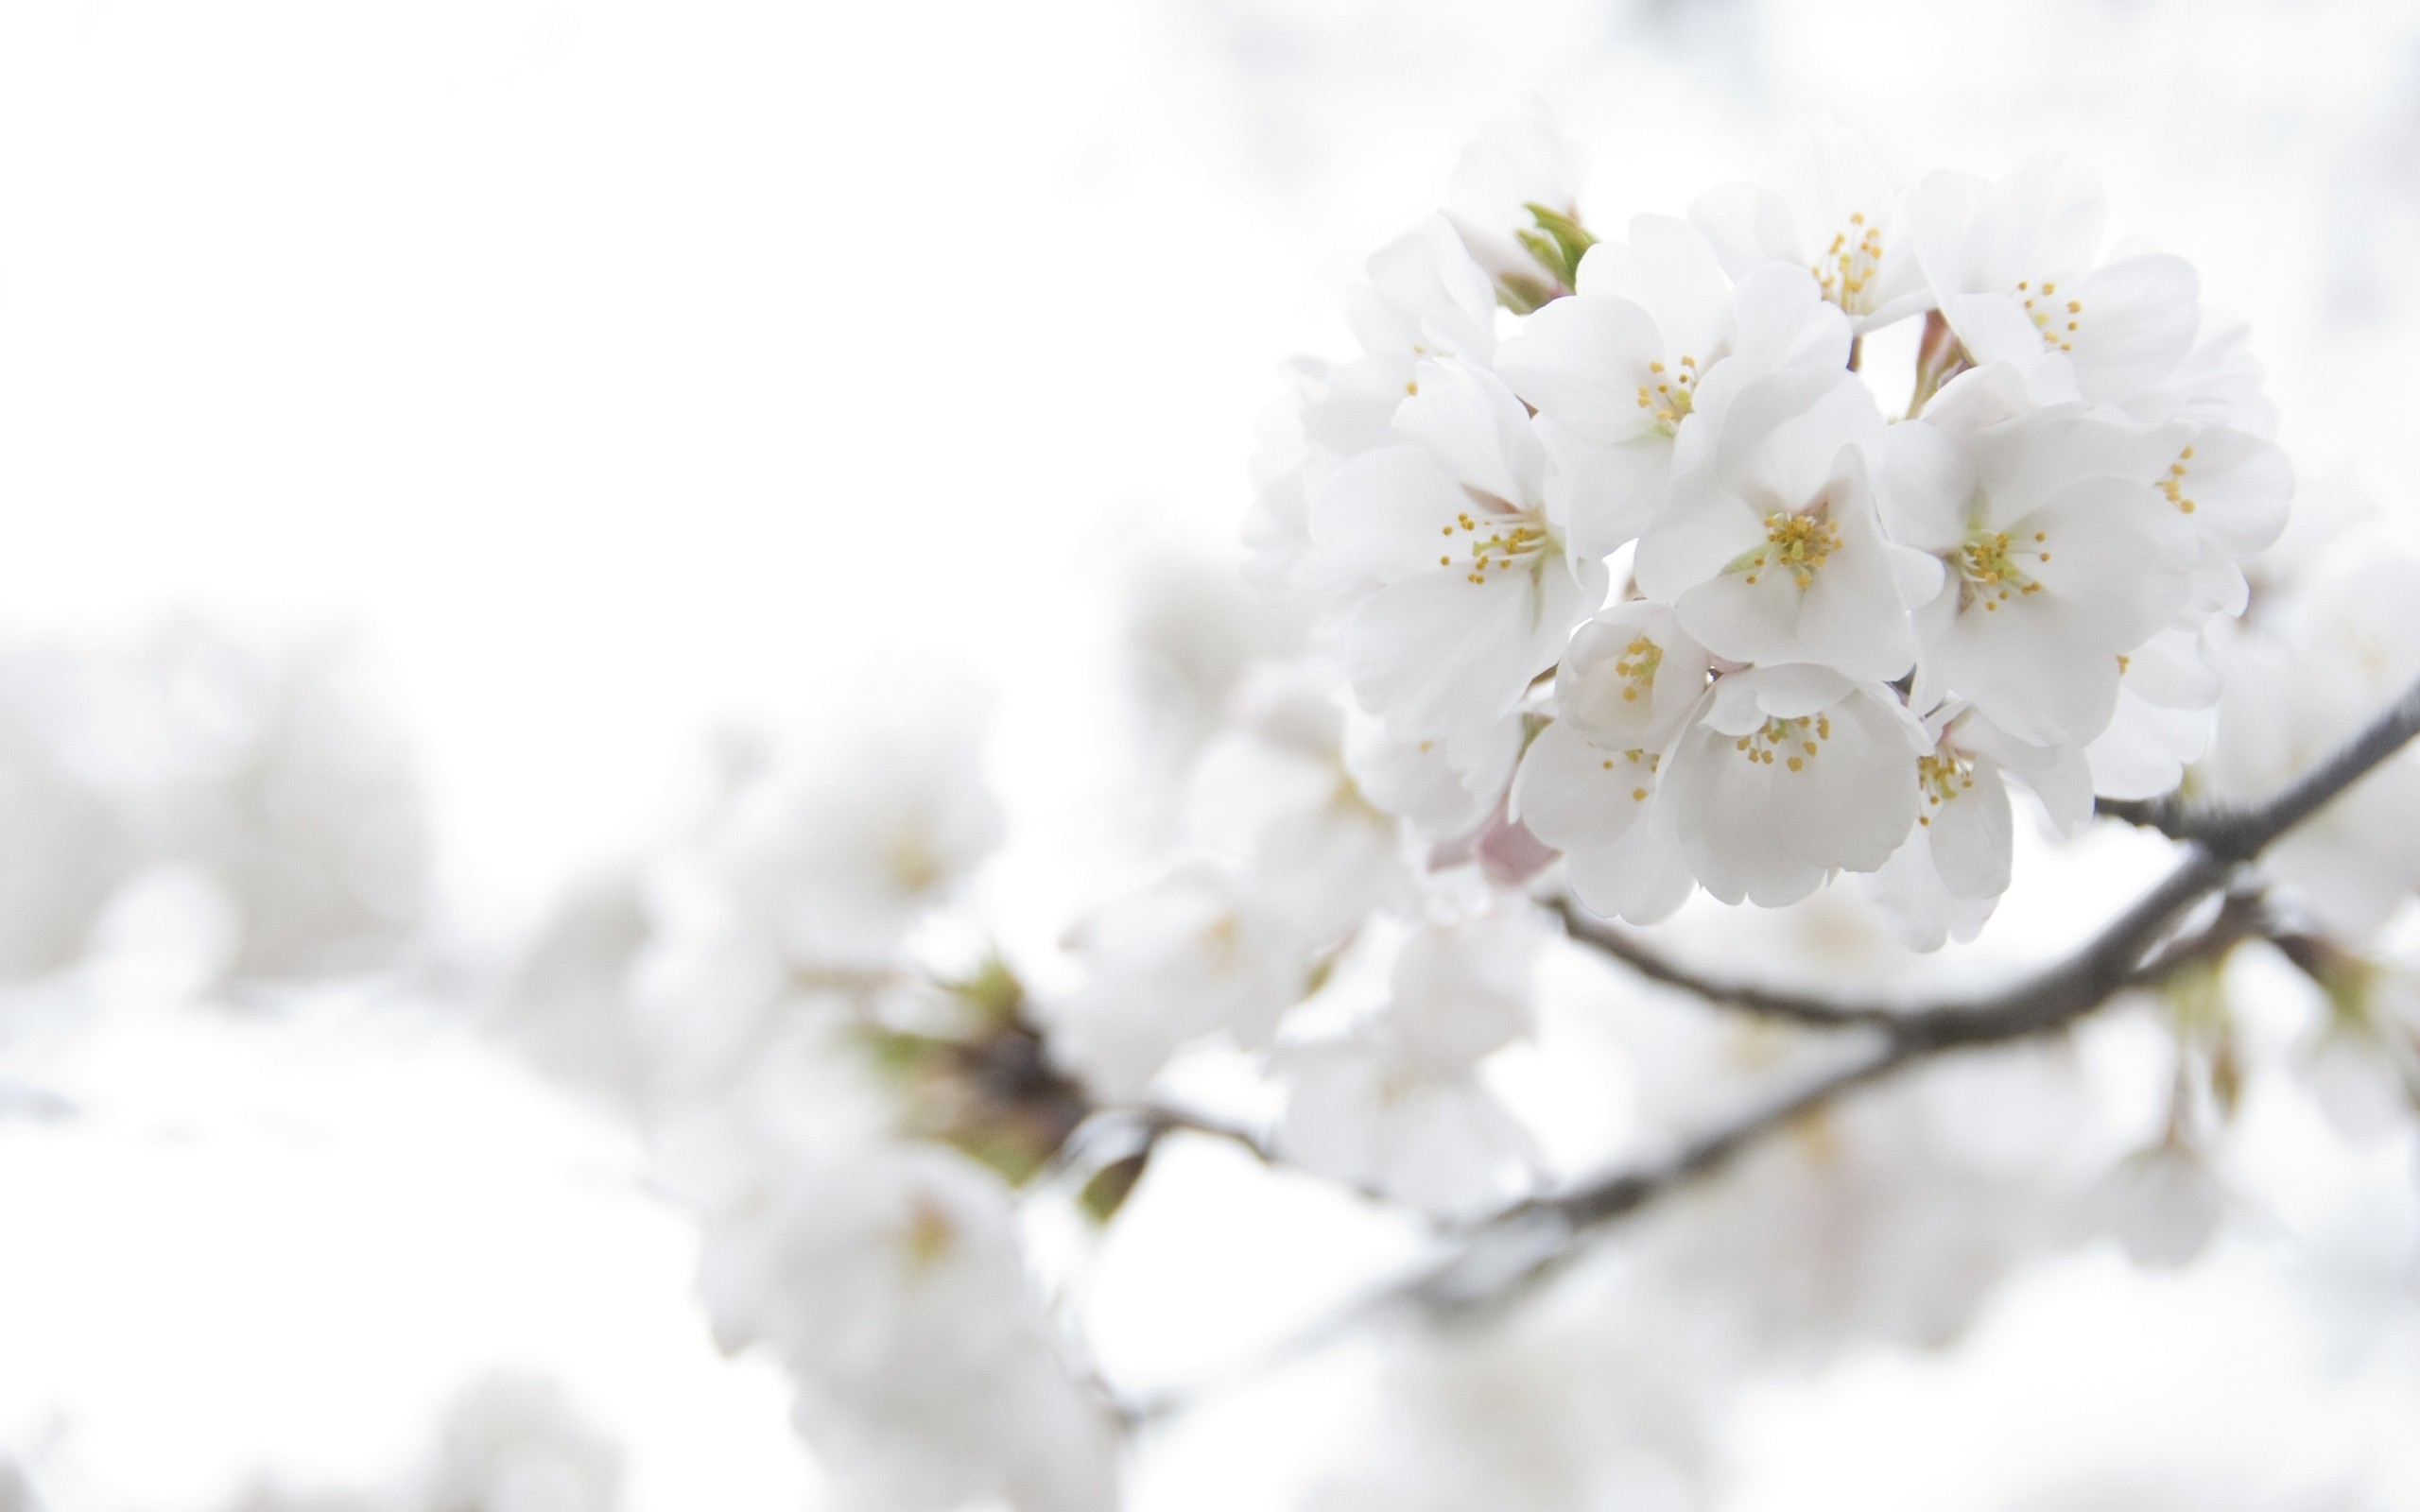 White flowers tumblr 31 background hdflowerwallpaper white flowers tumblr free wallpaper mightylinksfo